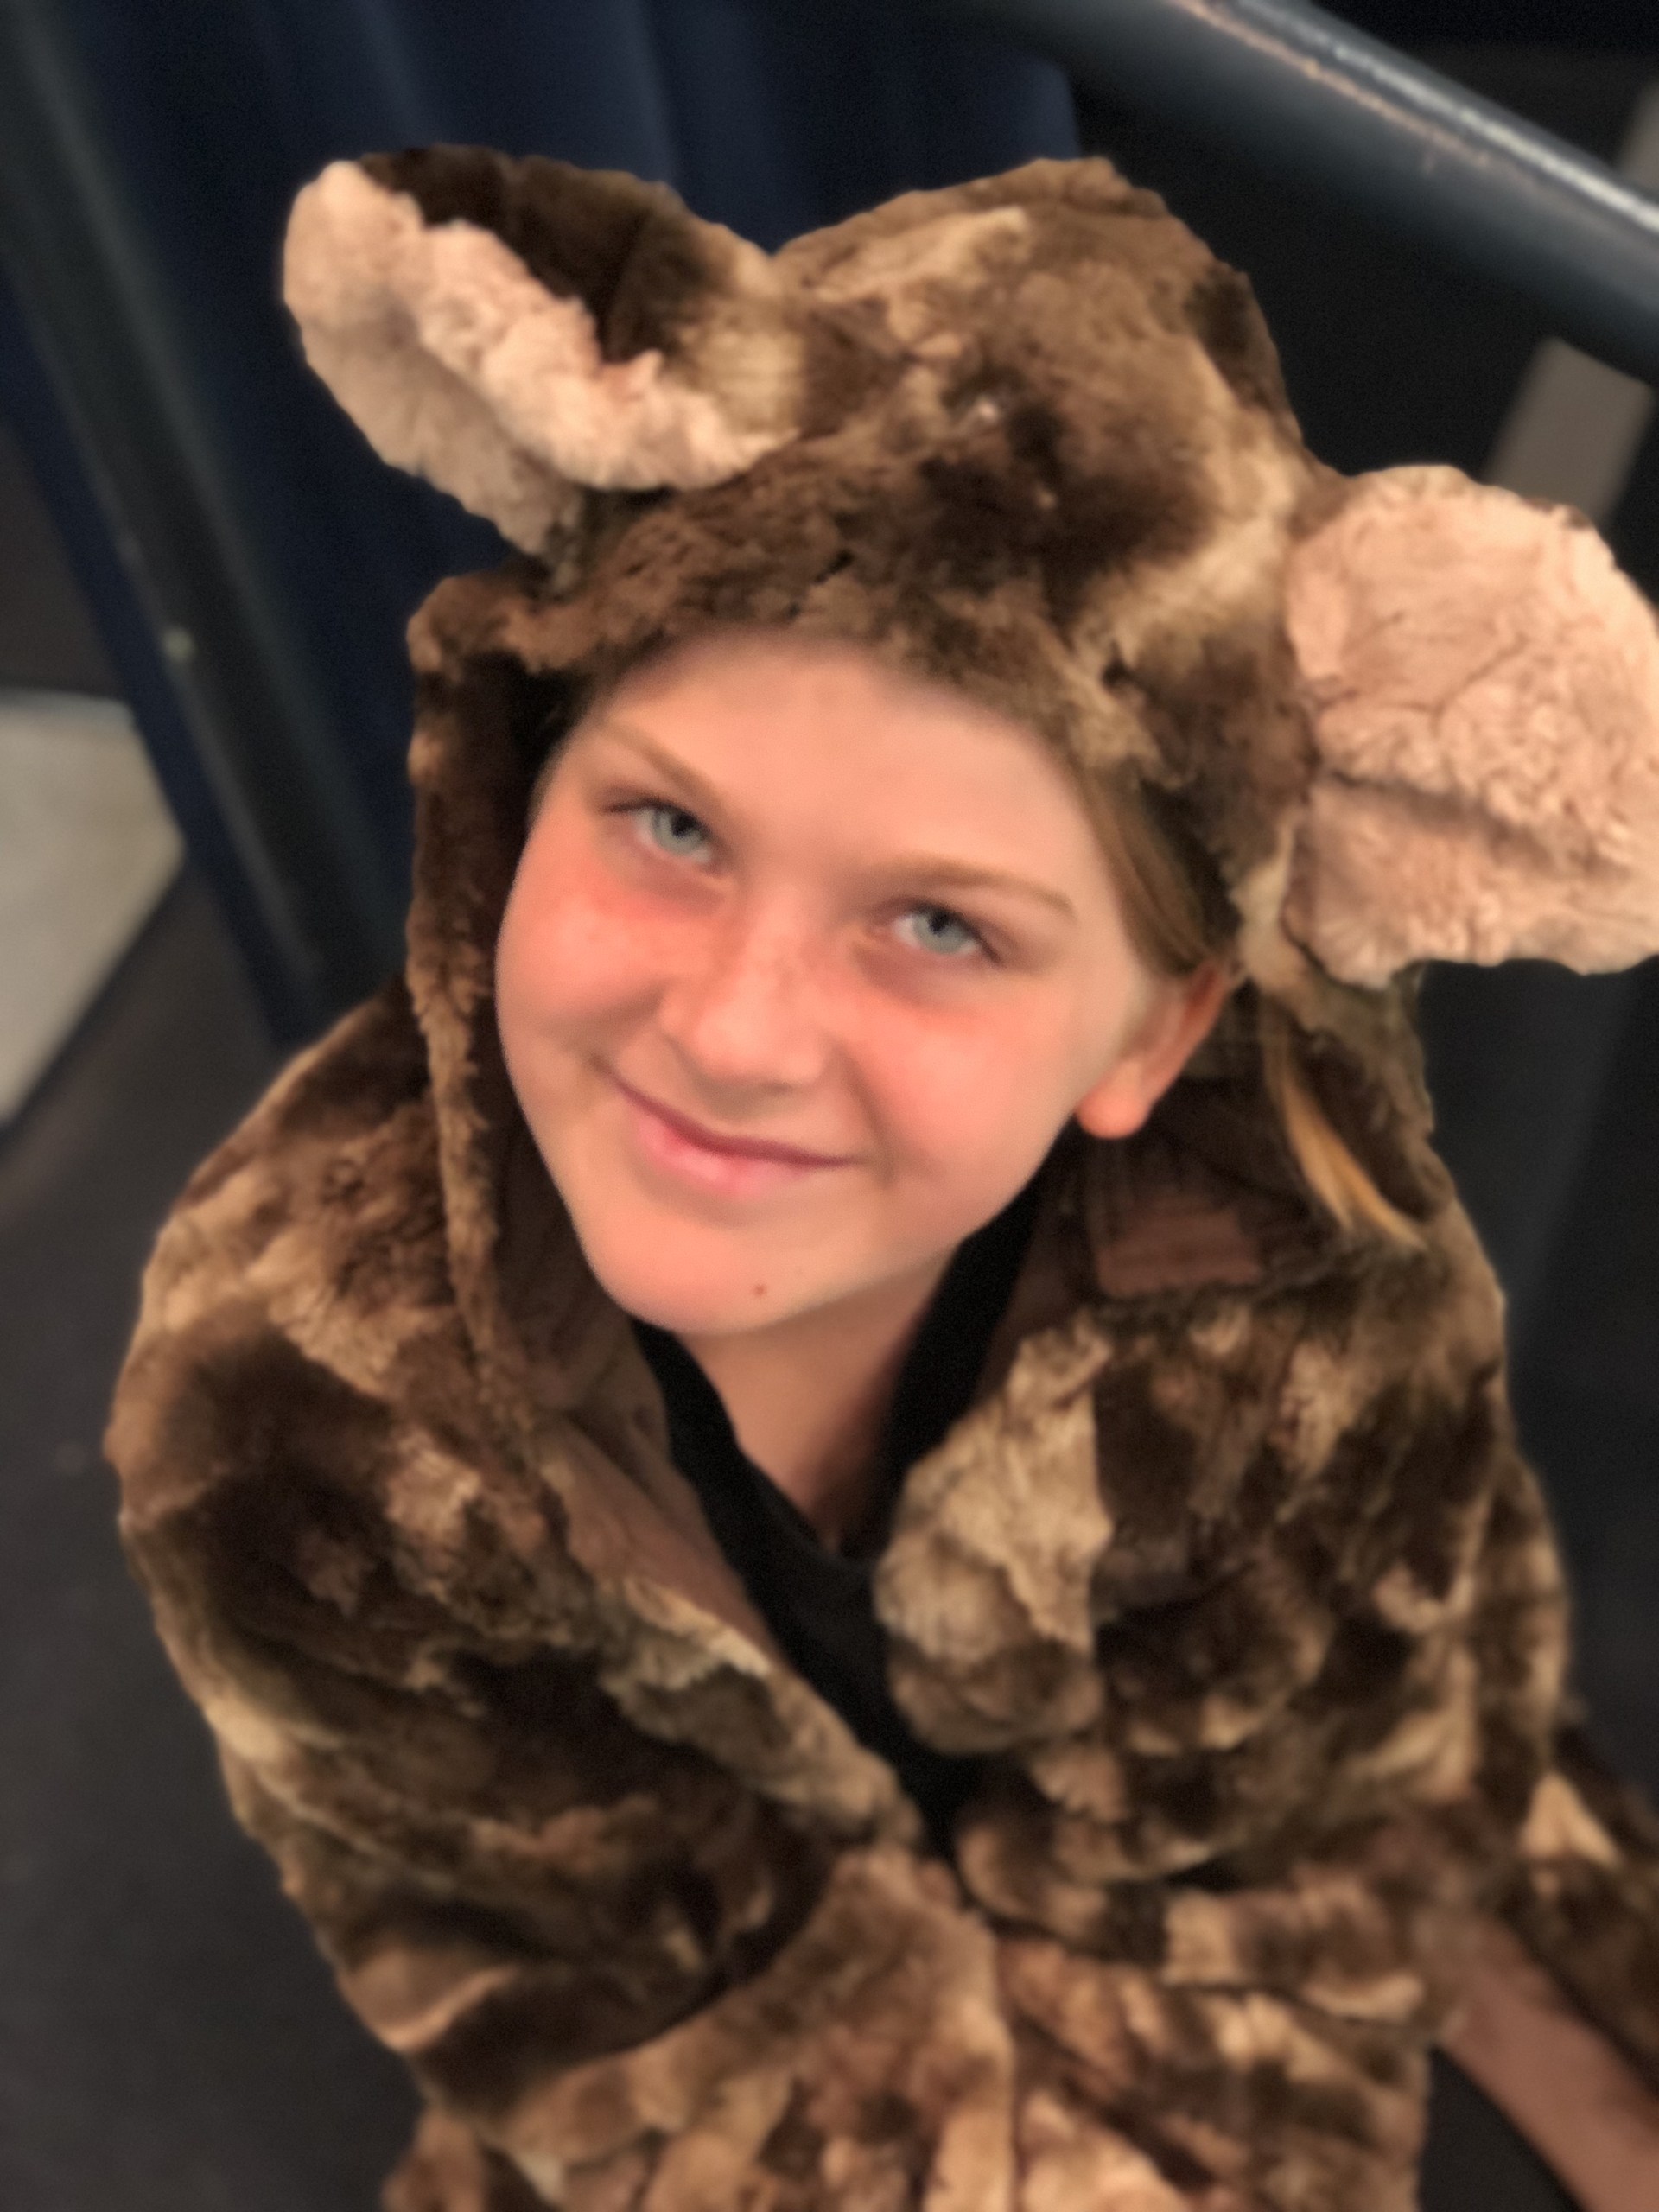 Girl in bear costume for Jungle Book.